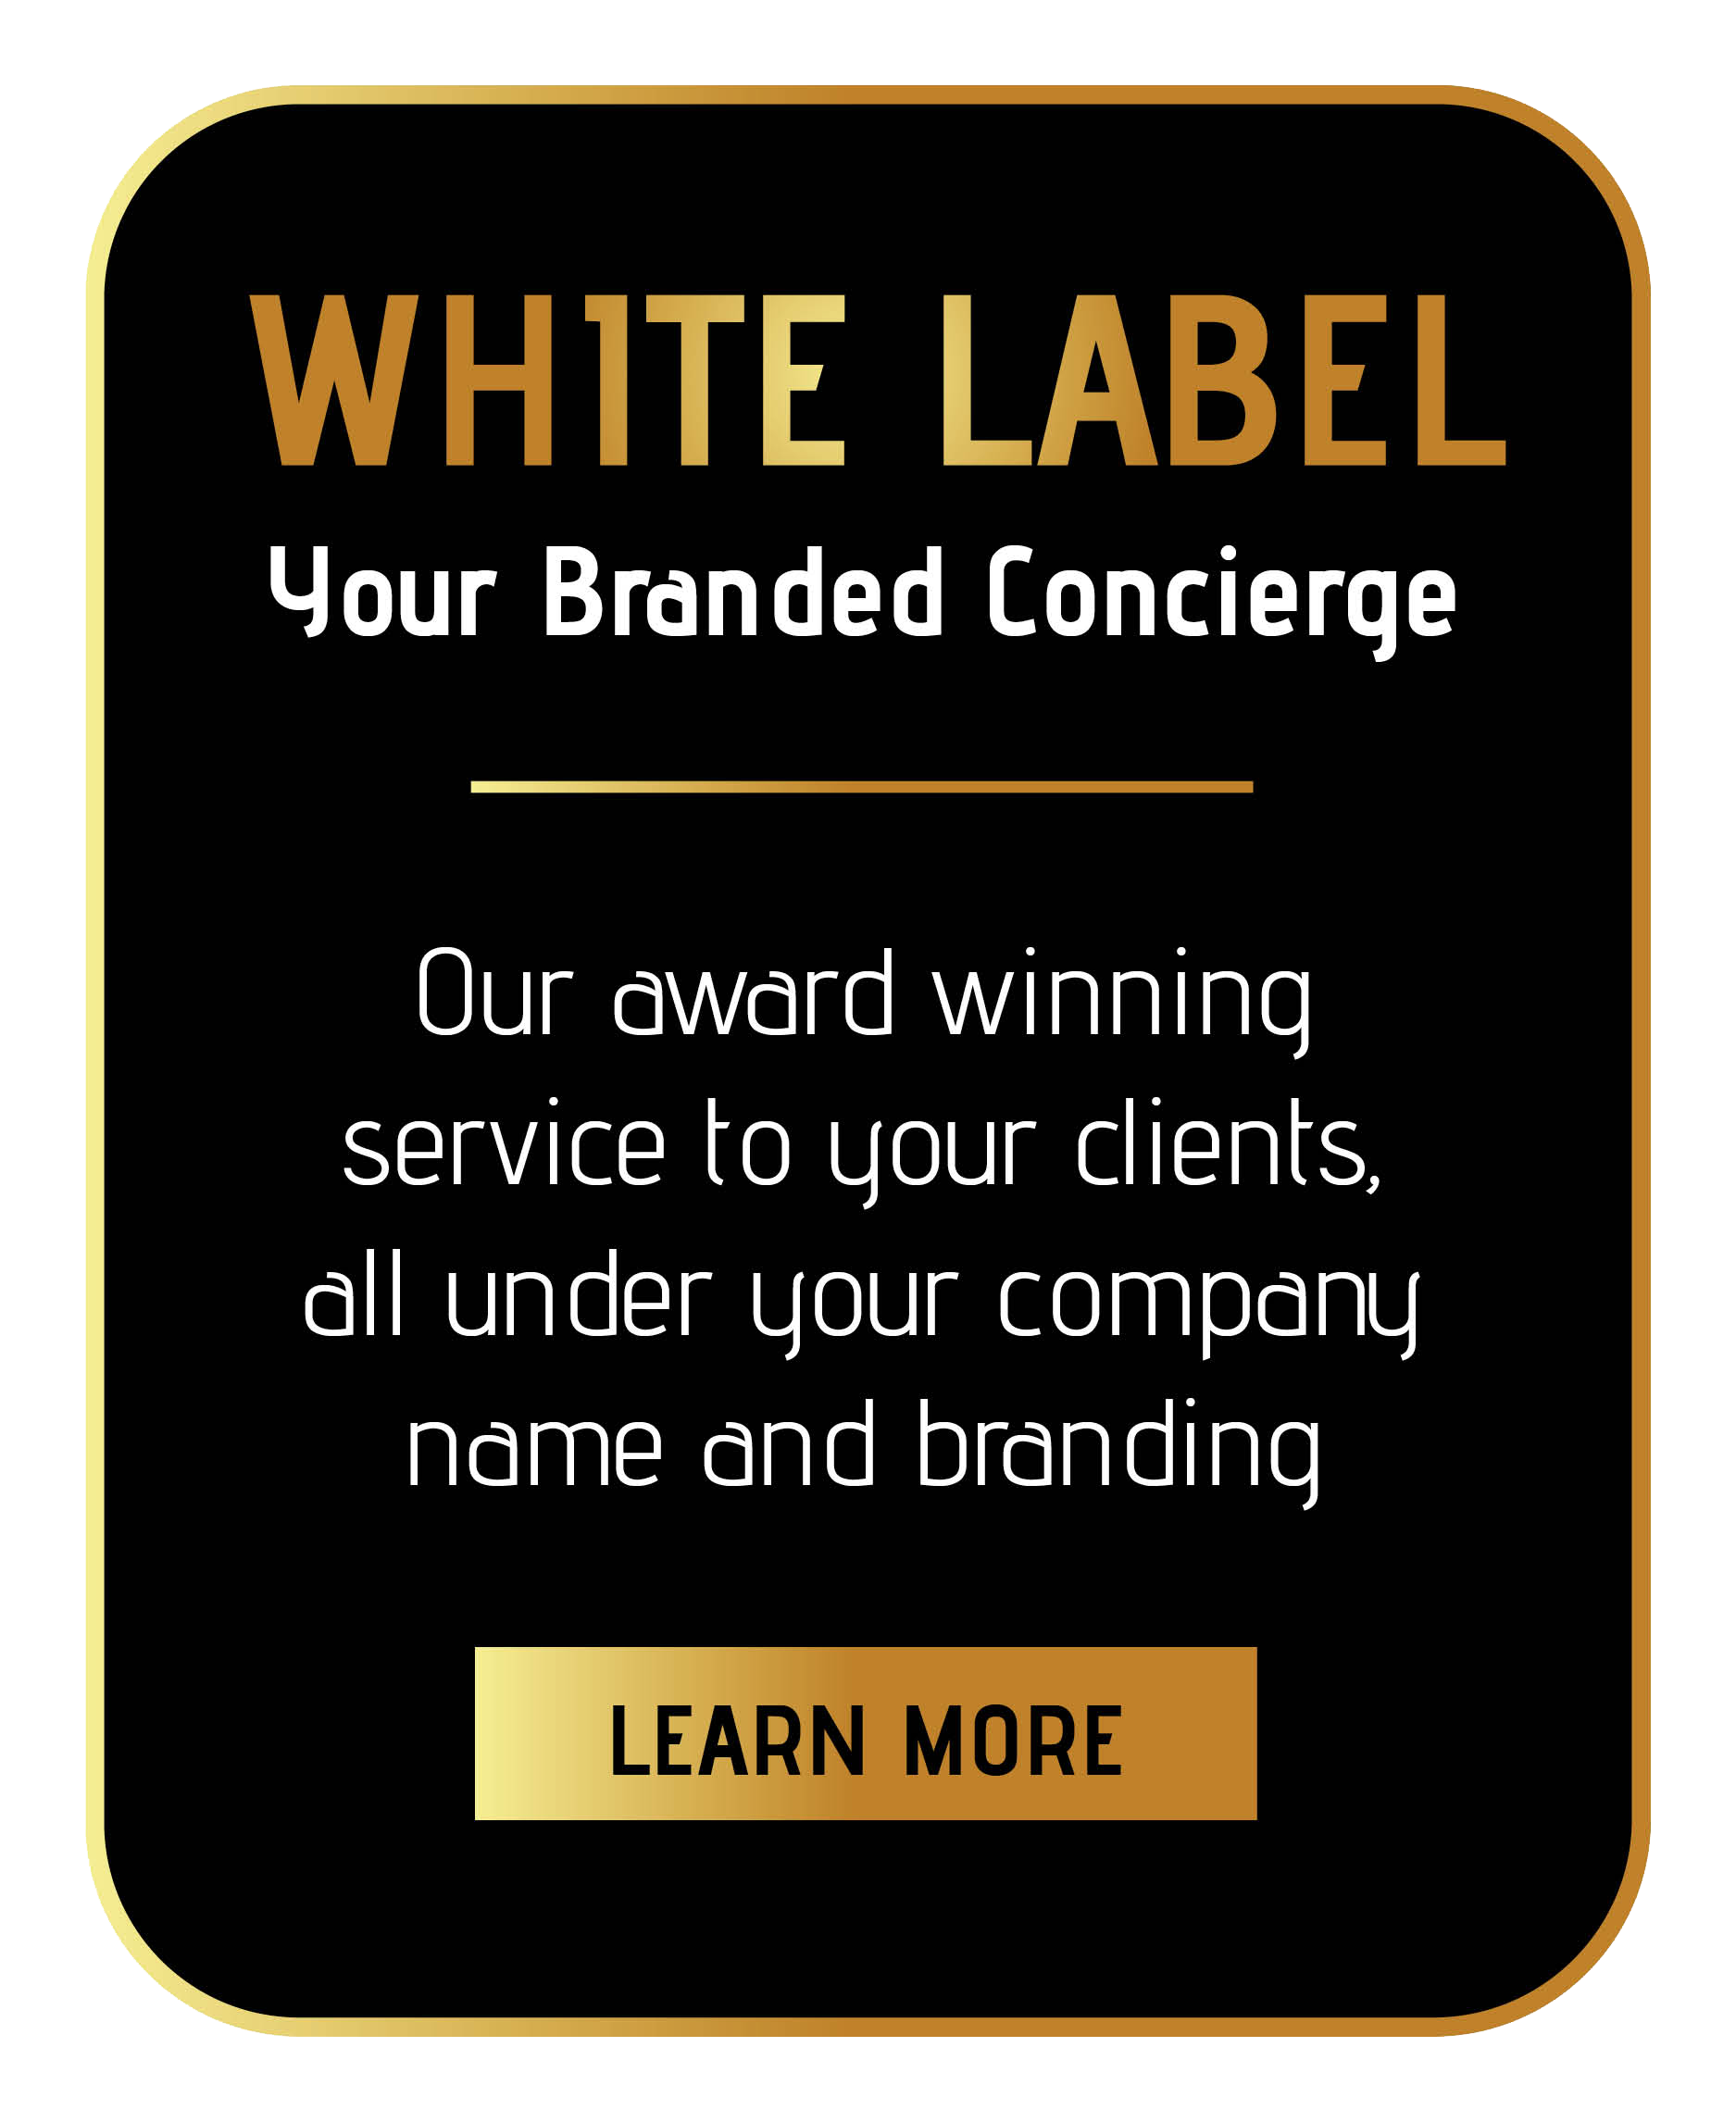 join sincura white label concierge membership supplying our concierge services to your clients branded under your name